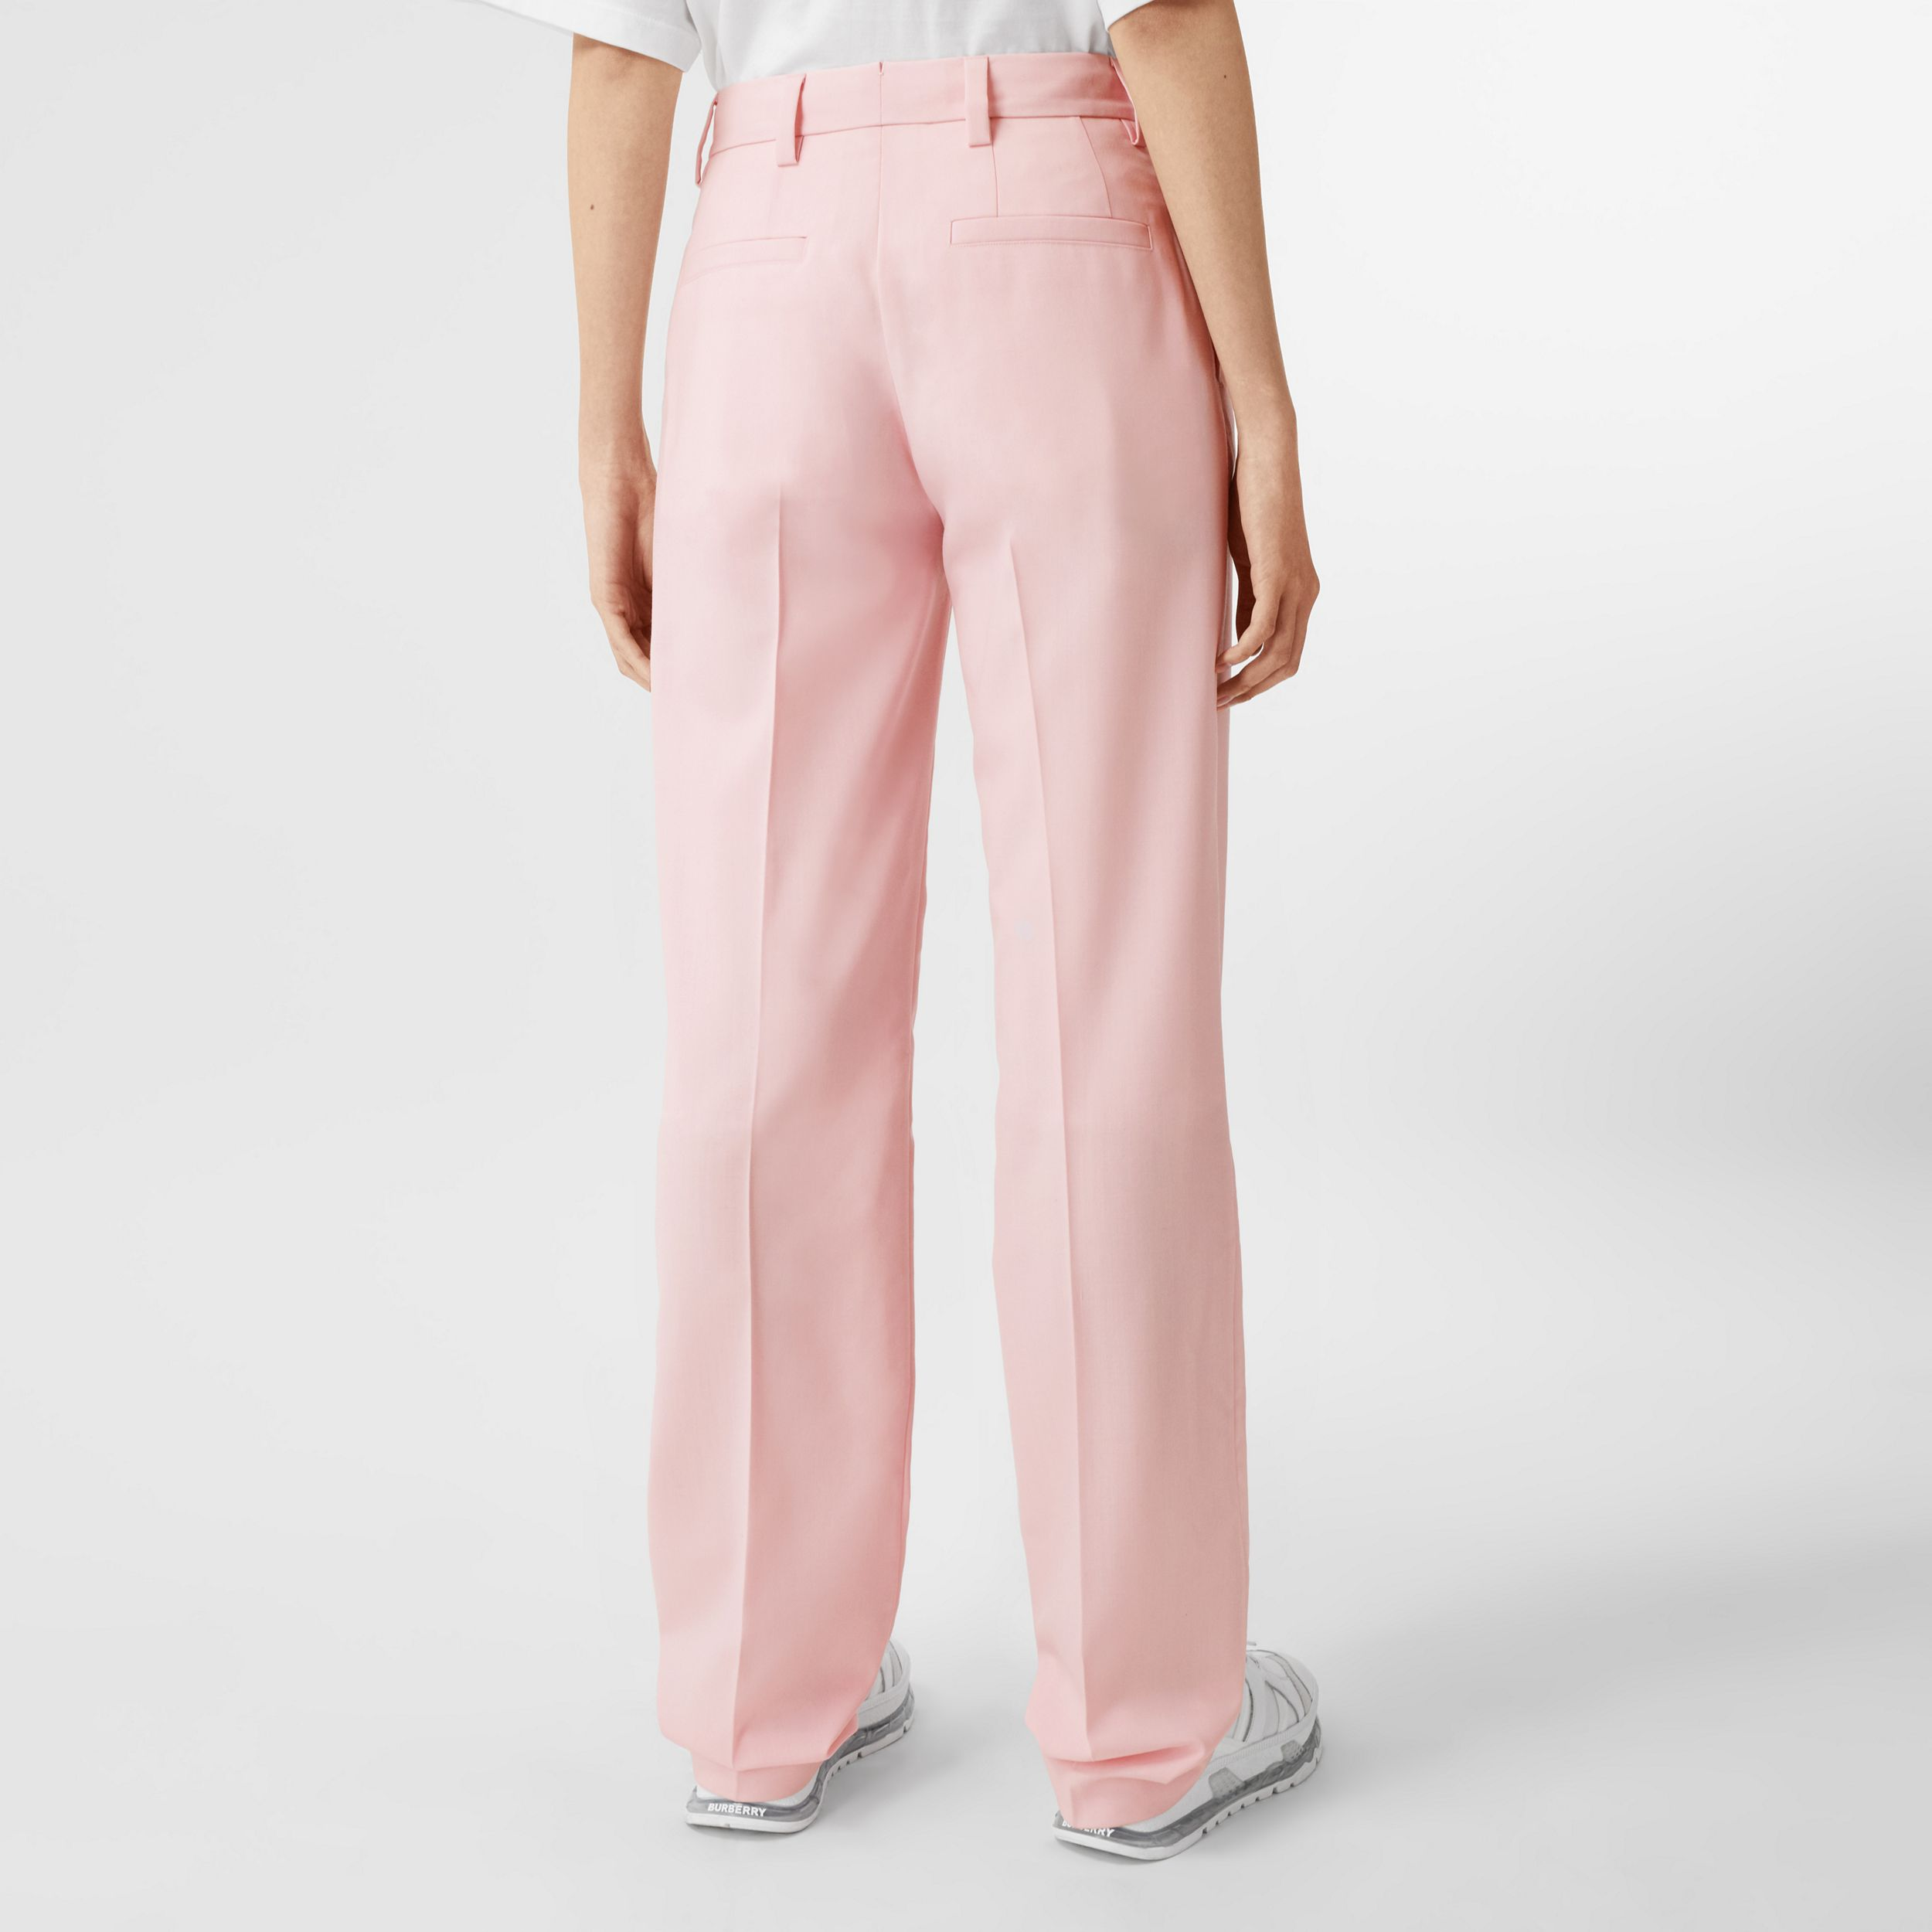 Pocket Detail Tumbled Wool Tailored Trousers in Soft Pink - Women | Burberry - 3